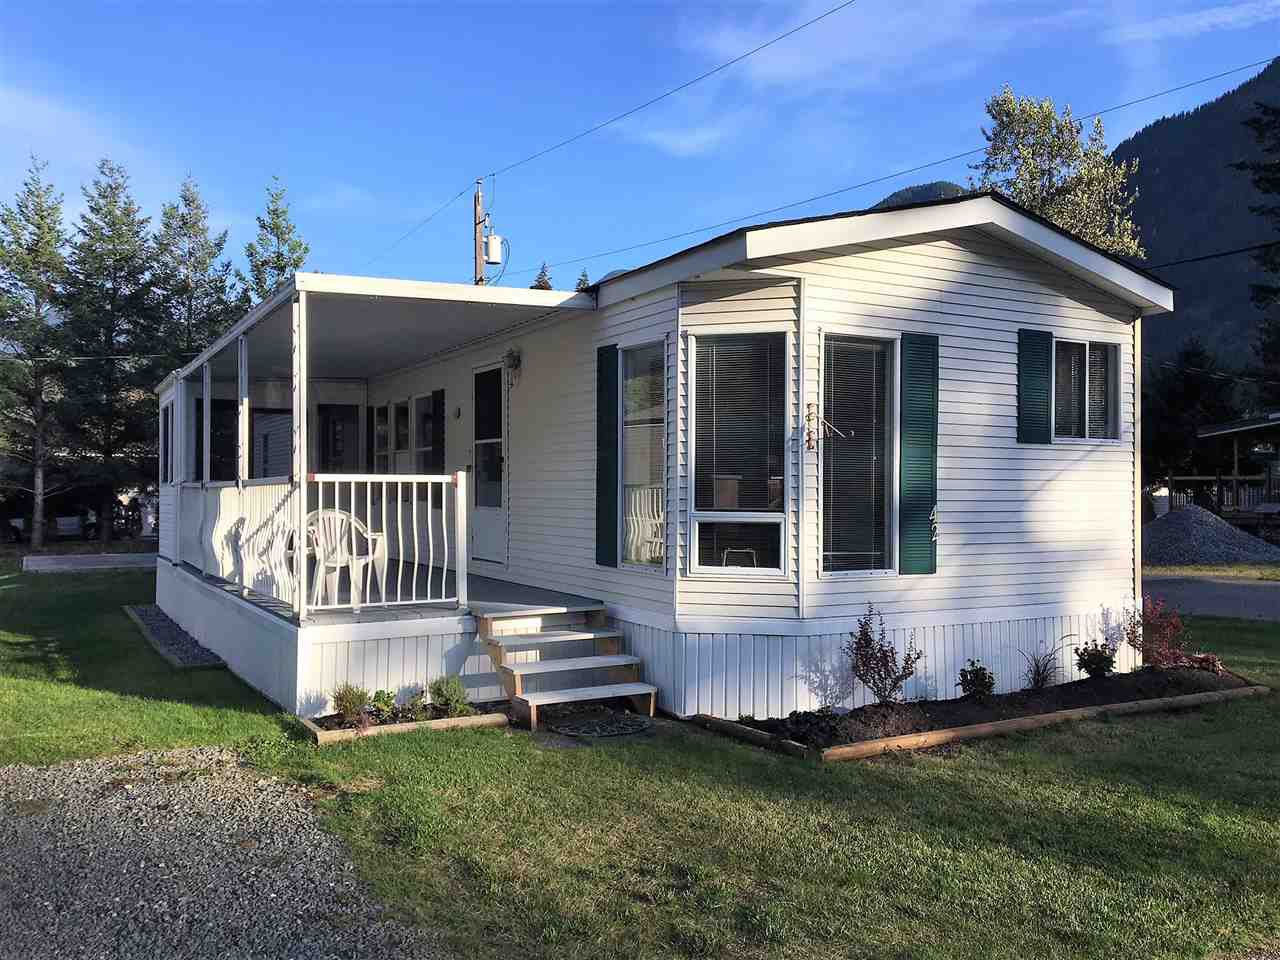 "Main Photo: 42 65367 KAWKAWA LAKE Road in Hope: Hope Kawkawa Lake Manufactured Home for sale in ""CRYSTAL RIVER COURT"" : MLS®# R2402405"